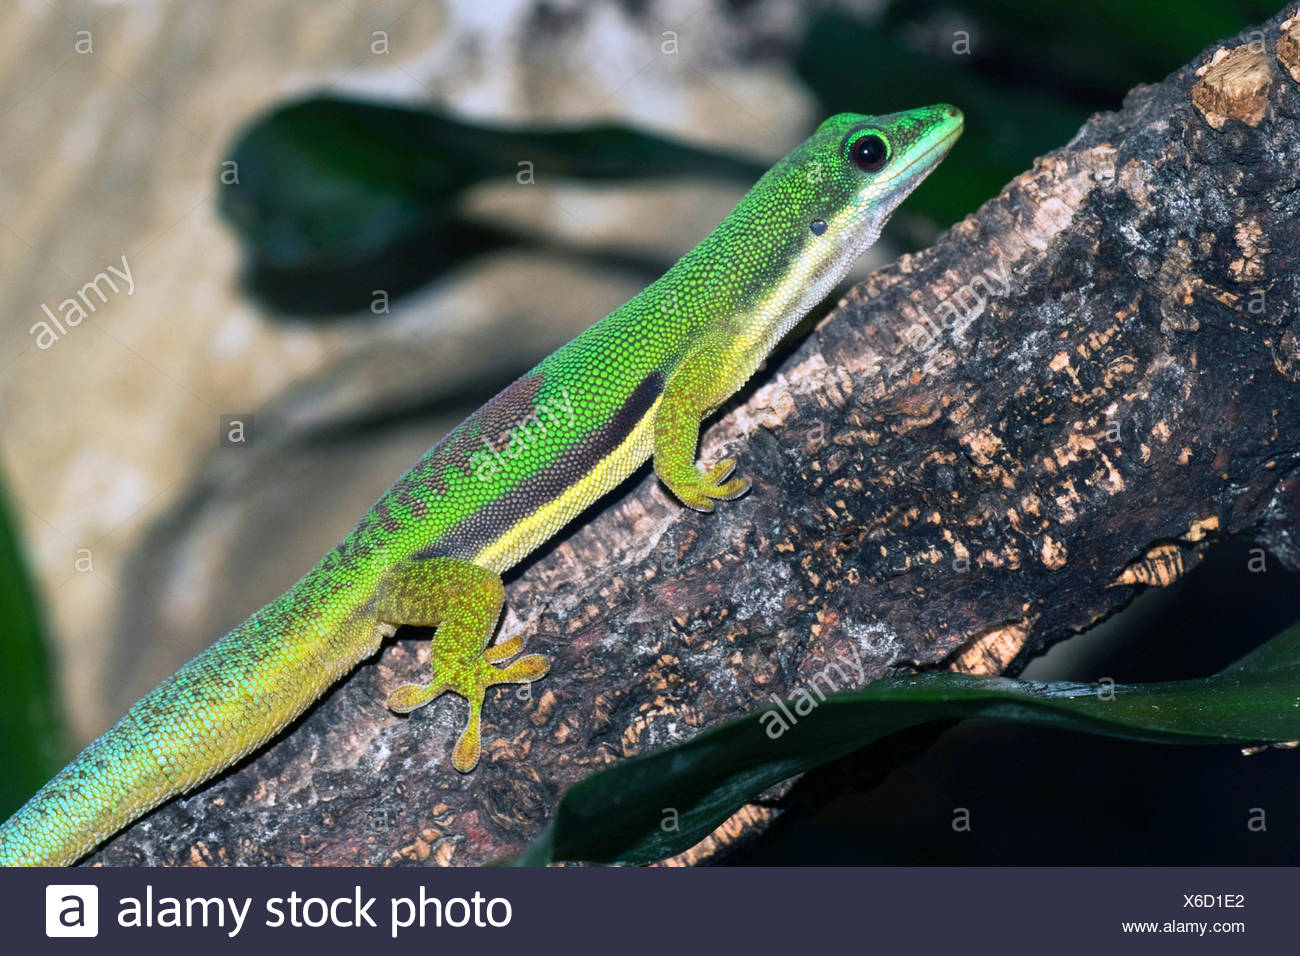 lined day gecko (Phelsuma lineata), on a twig - Stock Image